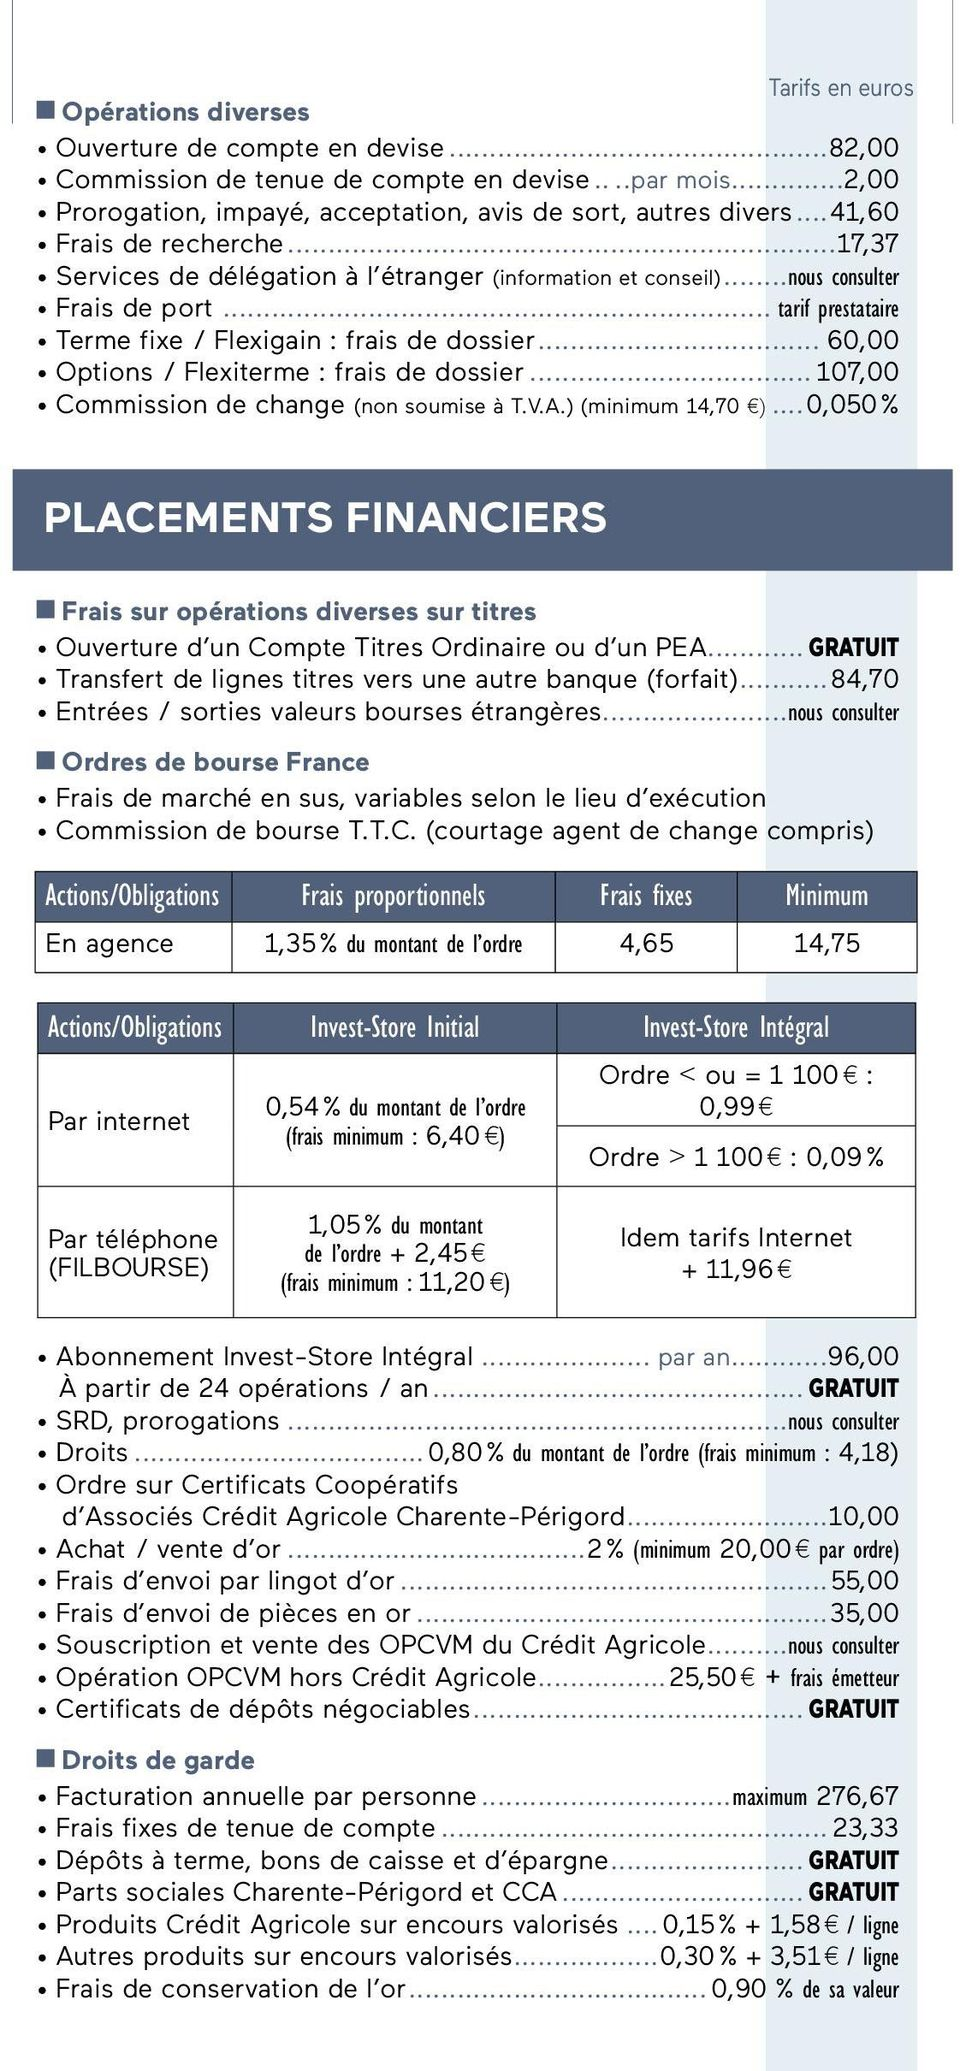 .. 60,00 Options / Flexiterme : frais de dossier... 107,00 Commission de change (non soumise à T.V.A.) (minimum 14,70 ).